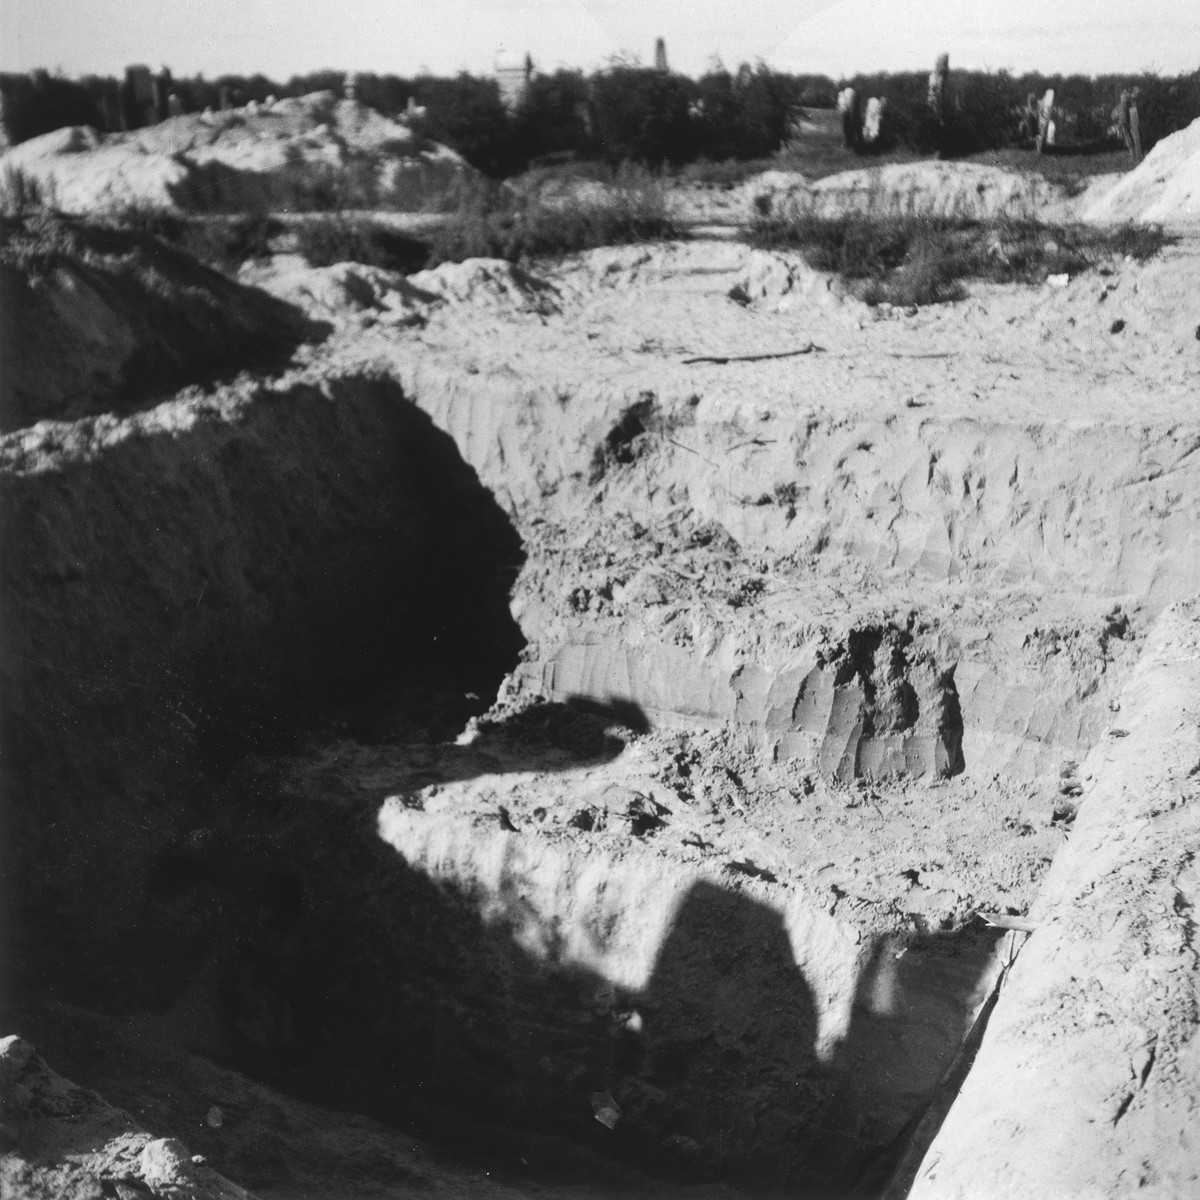 """View of a large mass grave in the Warsaw ghetto cemetery.  Joest's original caption reads: """"Next to the mass graves in which hundreds of corpses had been laid, a new one had already been dug."""""""